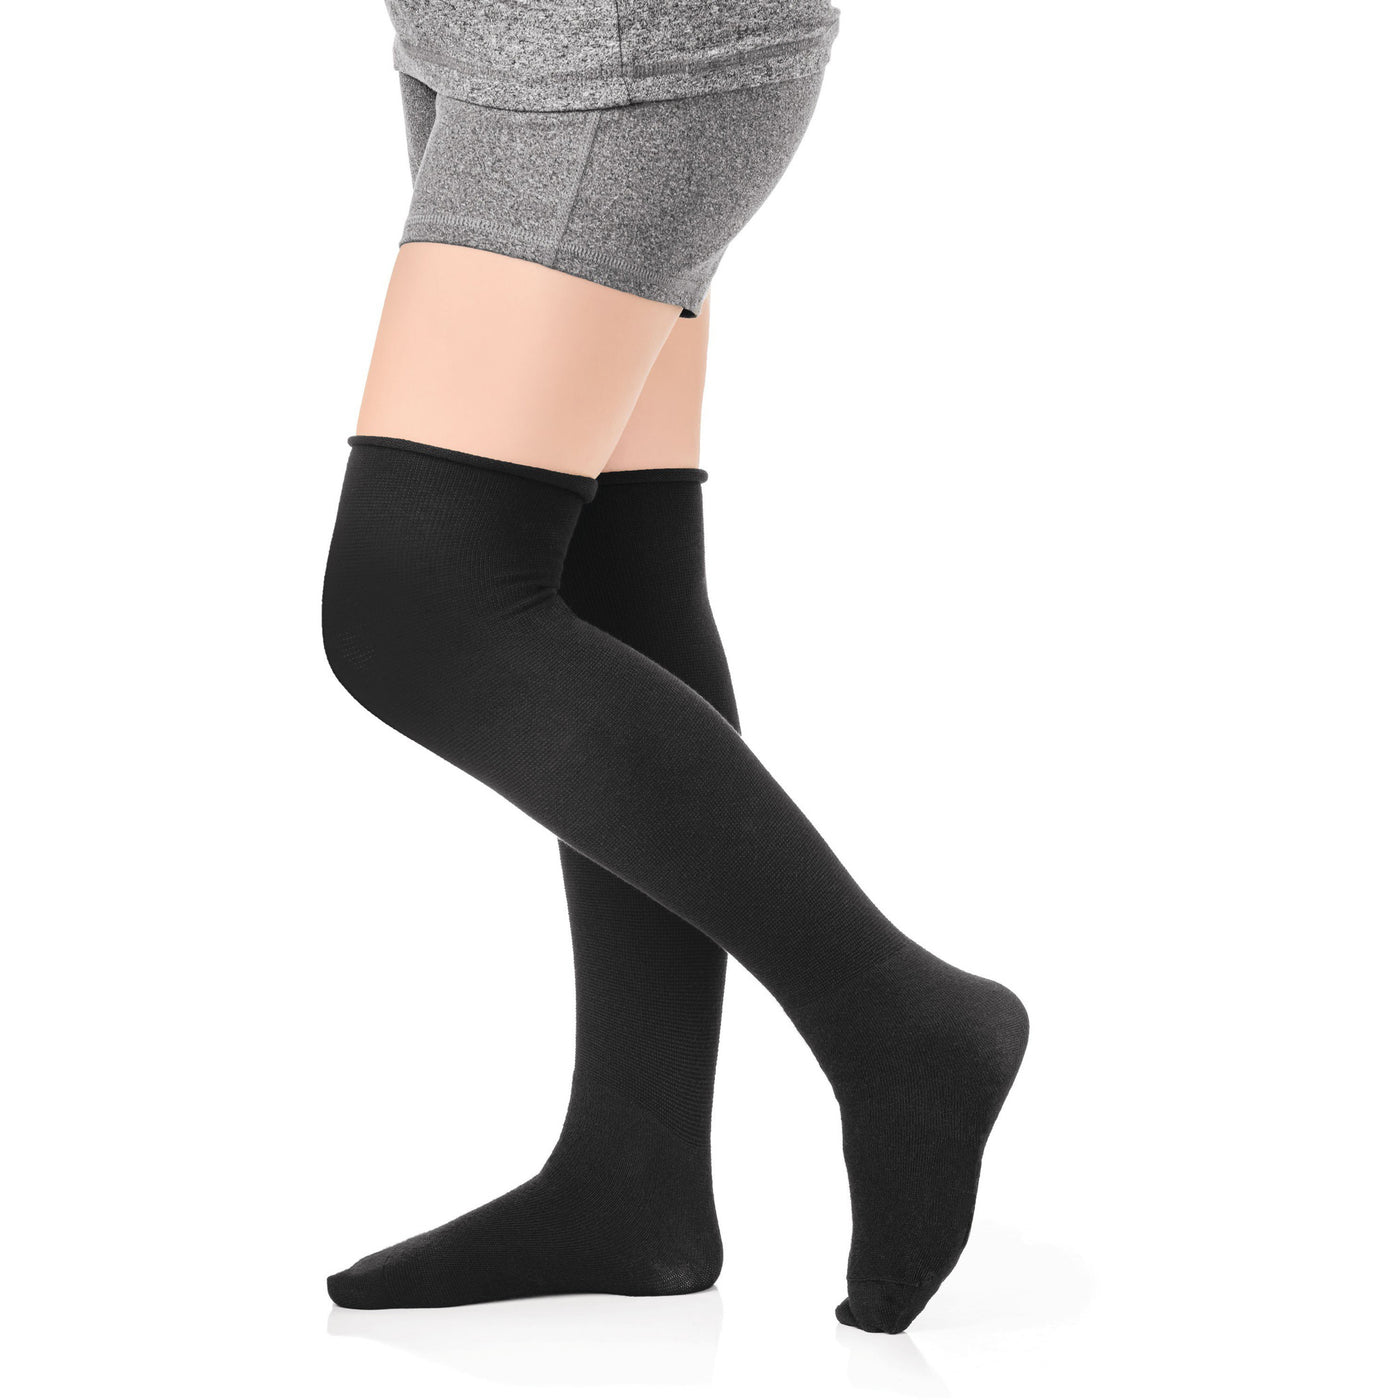 bbf2b453d2 Home Solaris ReadyWrap Liner Below Knee. Hover to zoom